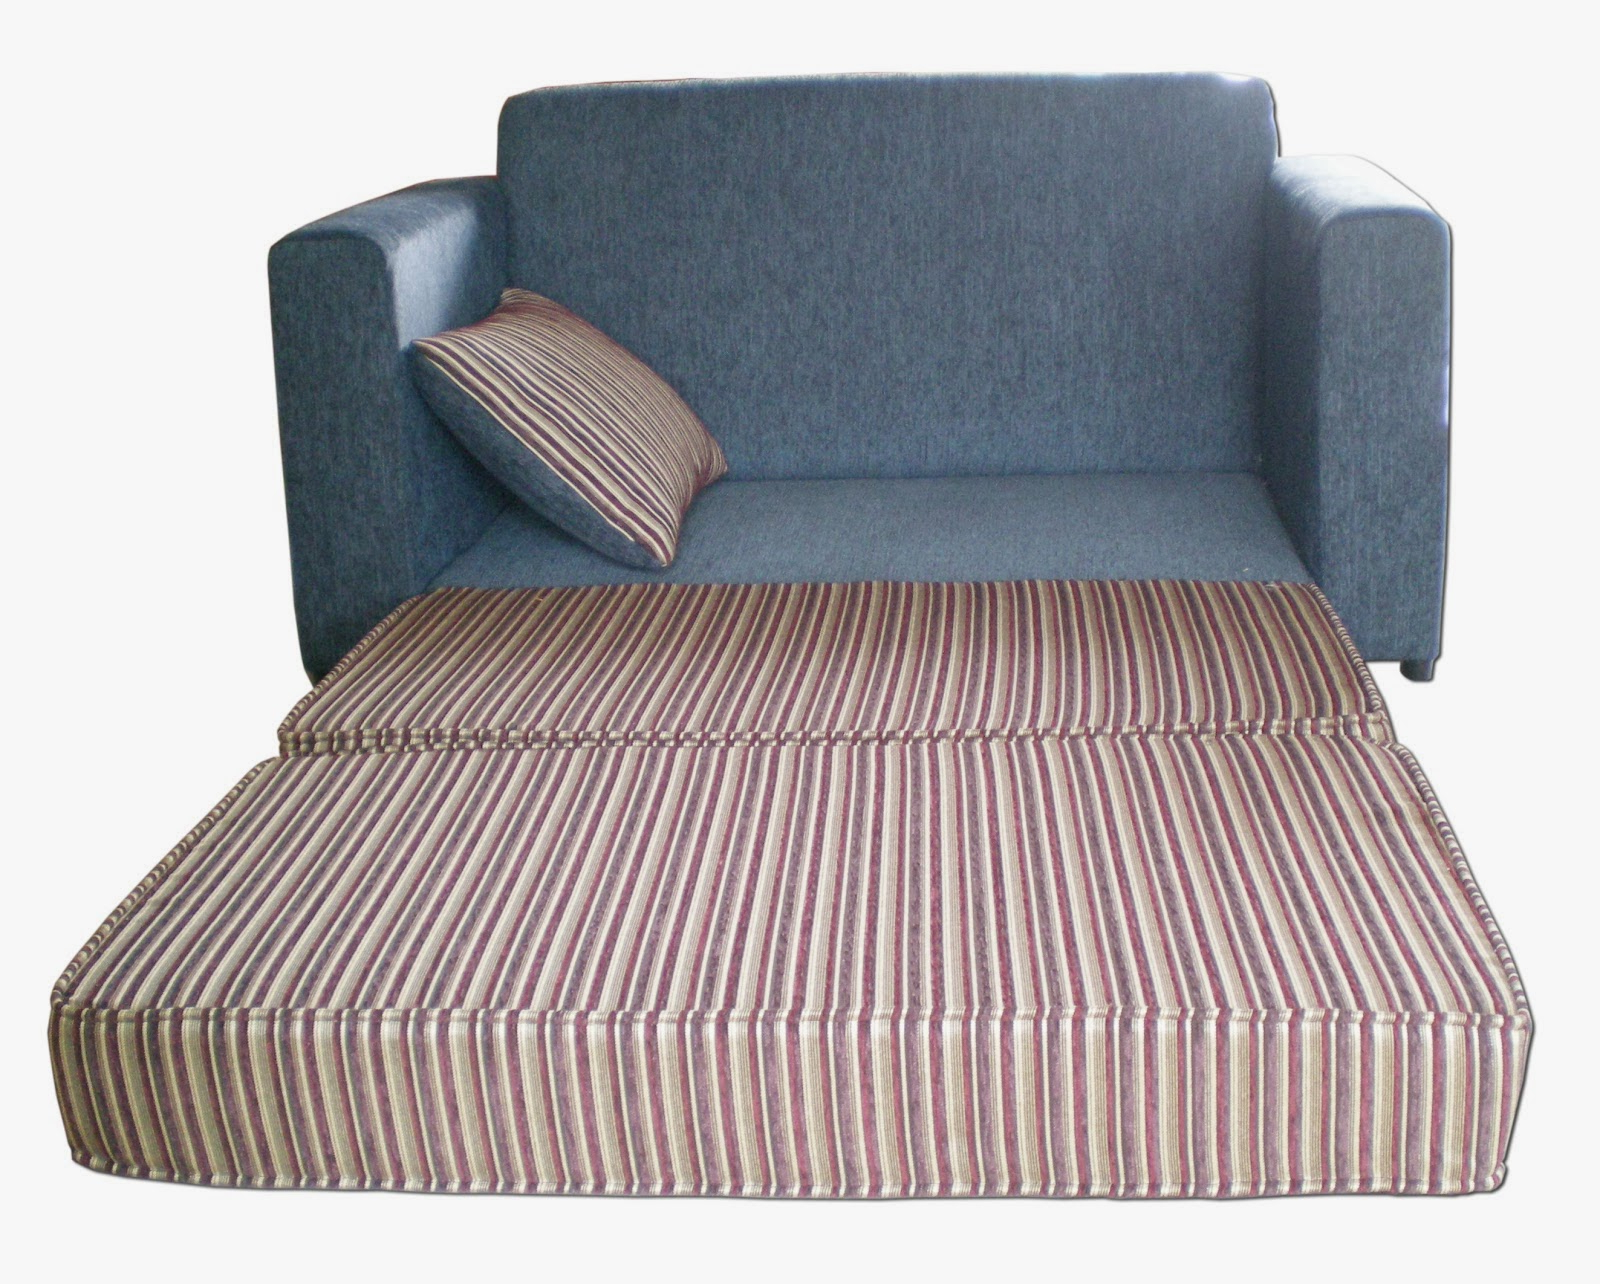 Single Sofa Bed Chairs Intended For 2018 Sleeper Sofa Single Couch Bed W Pull Out Chairs For Fold Mat Bed (Gallery 20 of 20)